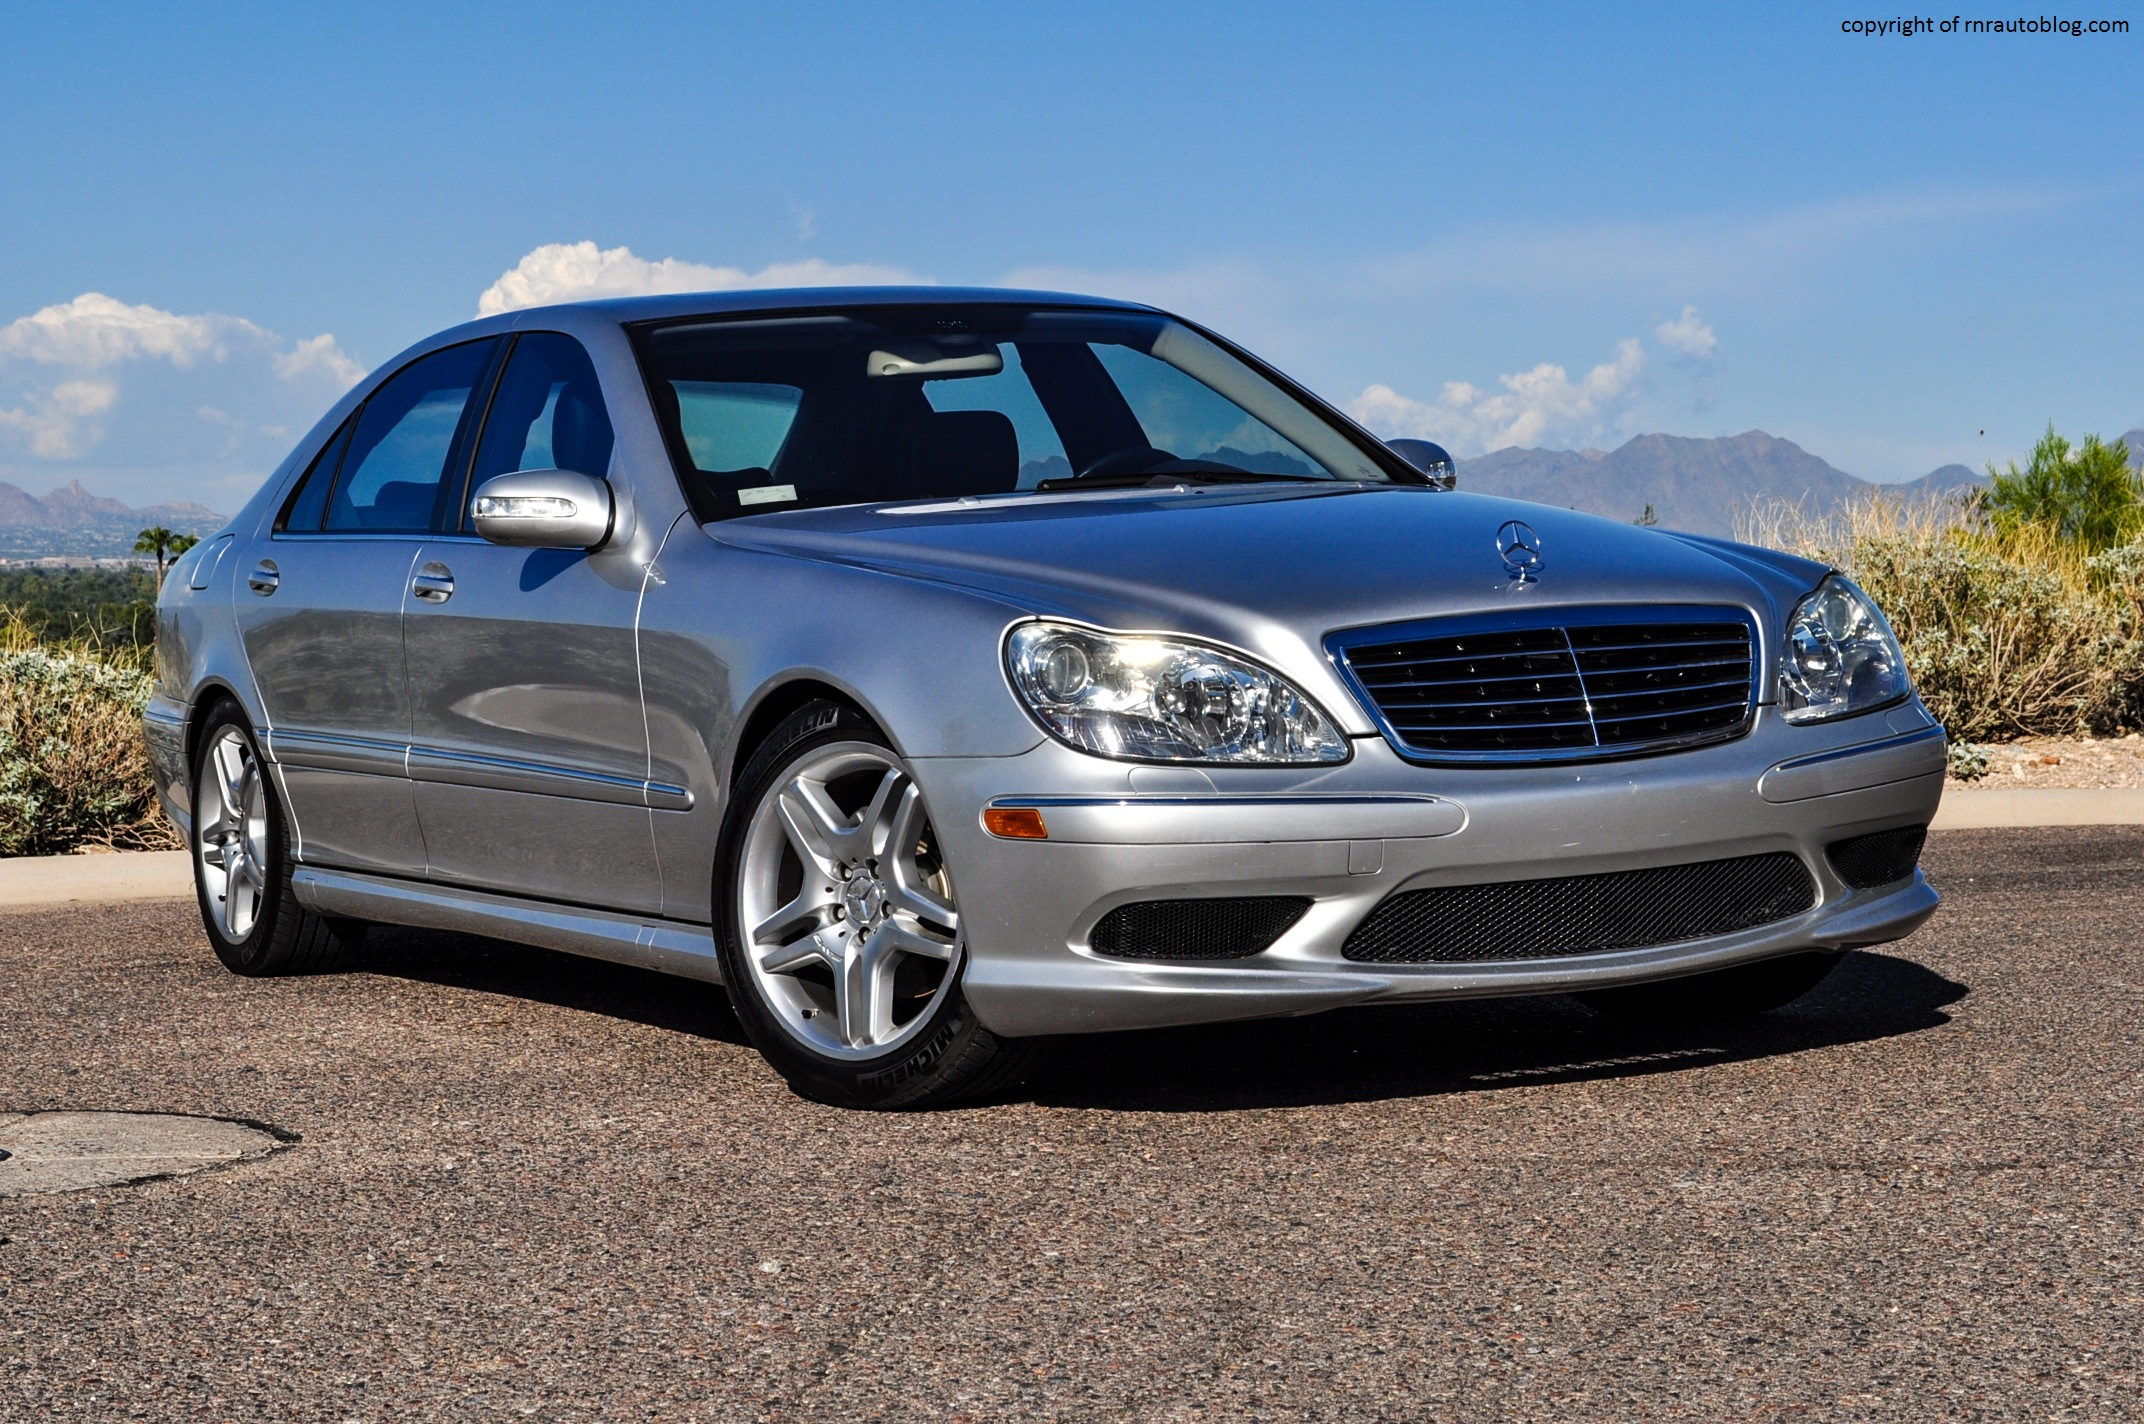 2006 mercedes benz s430 photoshoot rnr automotive blog